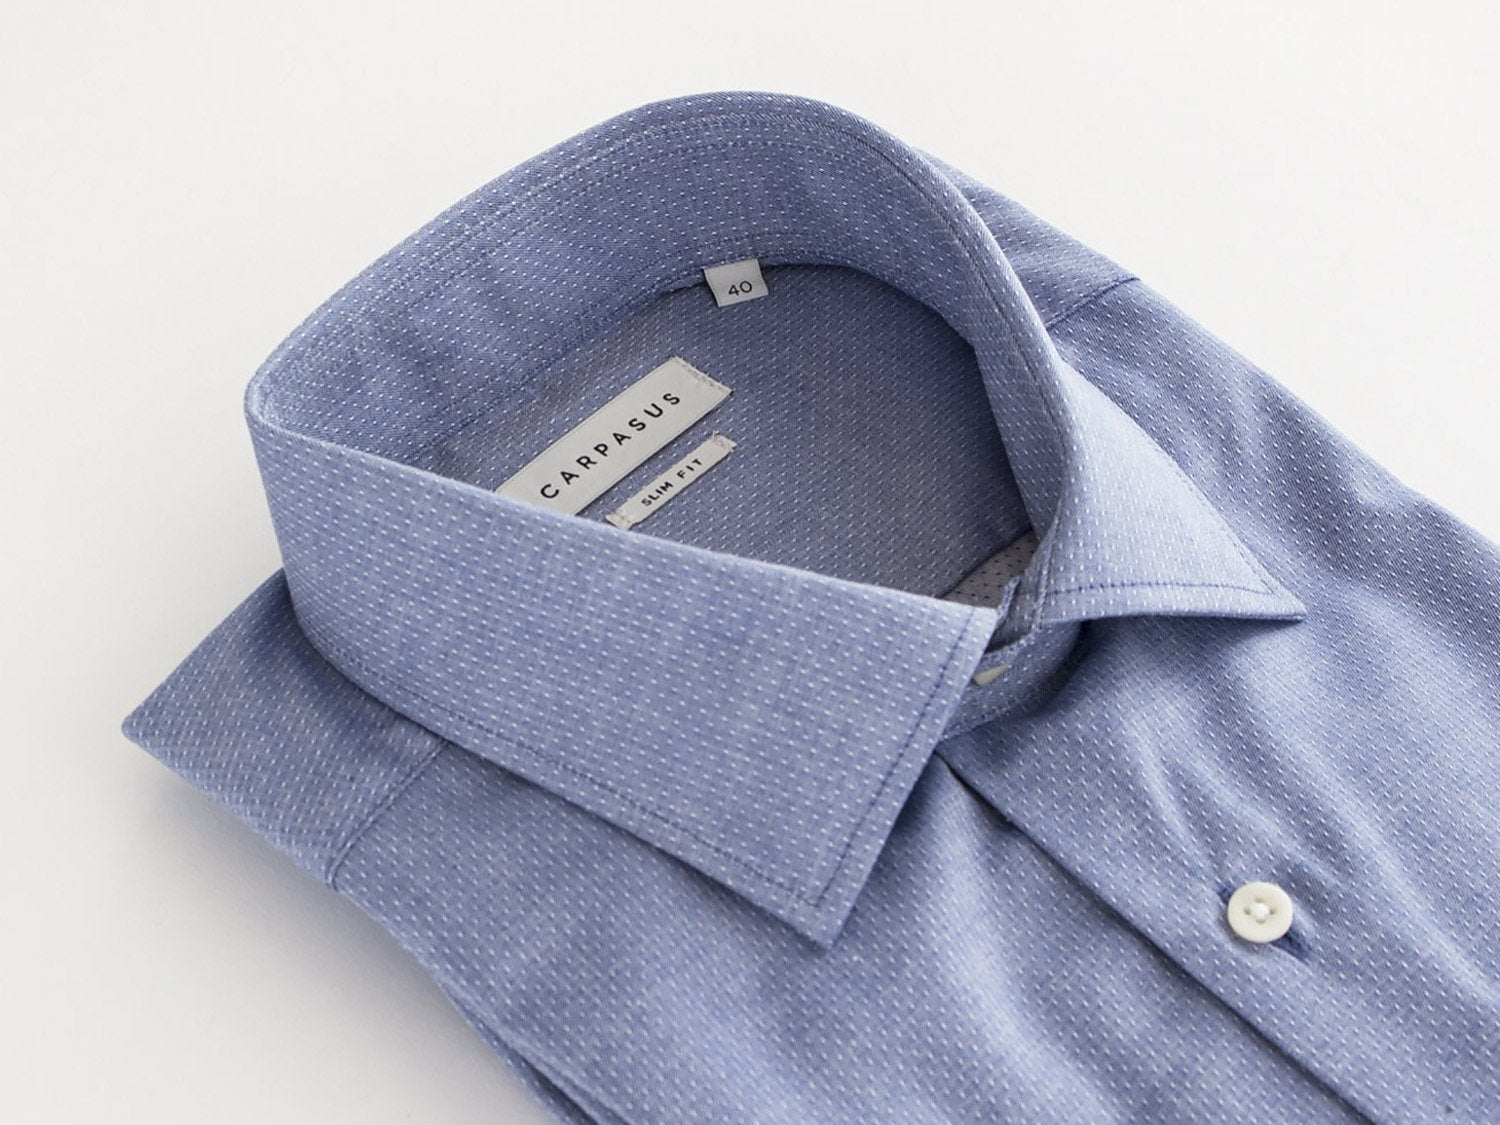 carpasus sustainable organic cotton tailor-made shirt dobby blue. Nachhaltiges Carpasus Masshemd aus Bio Baumwolle Dobby Blau